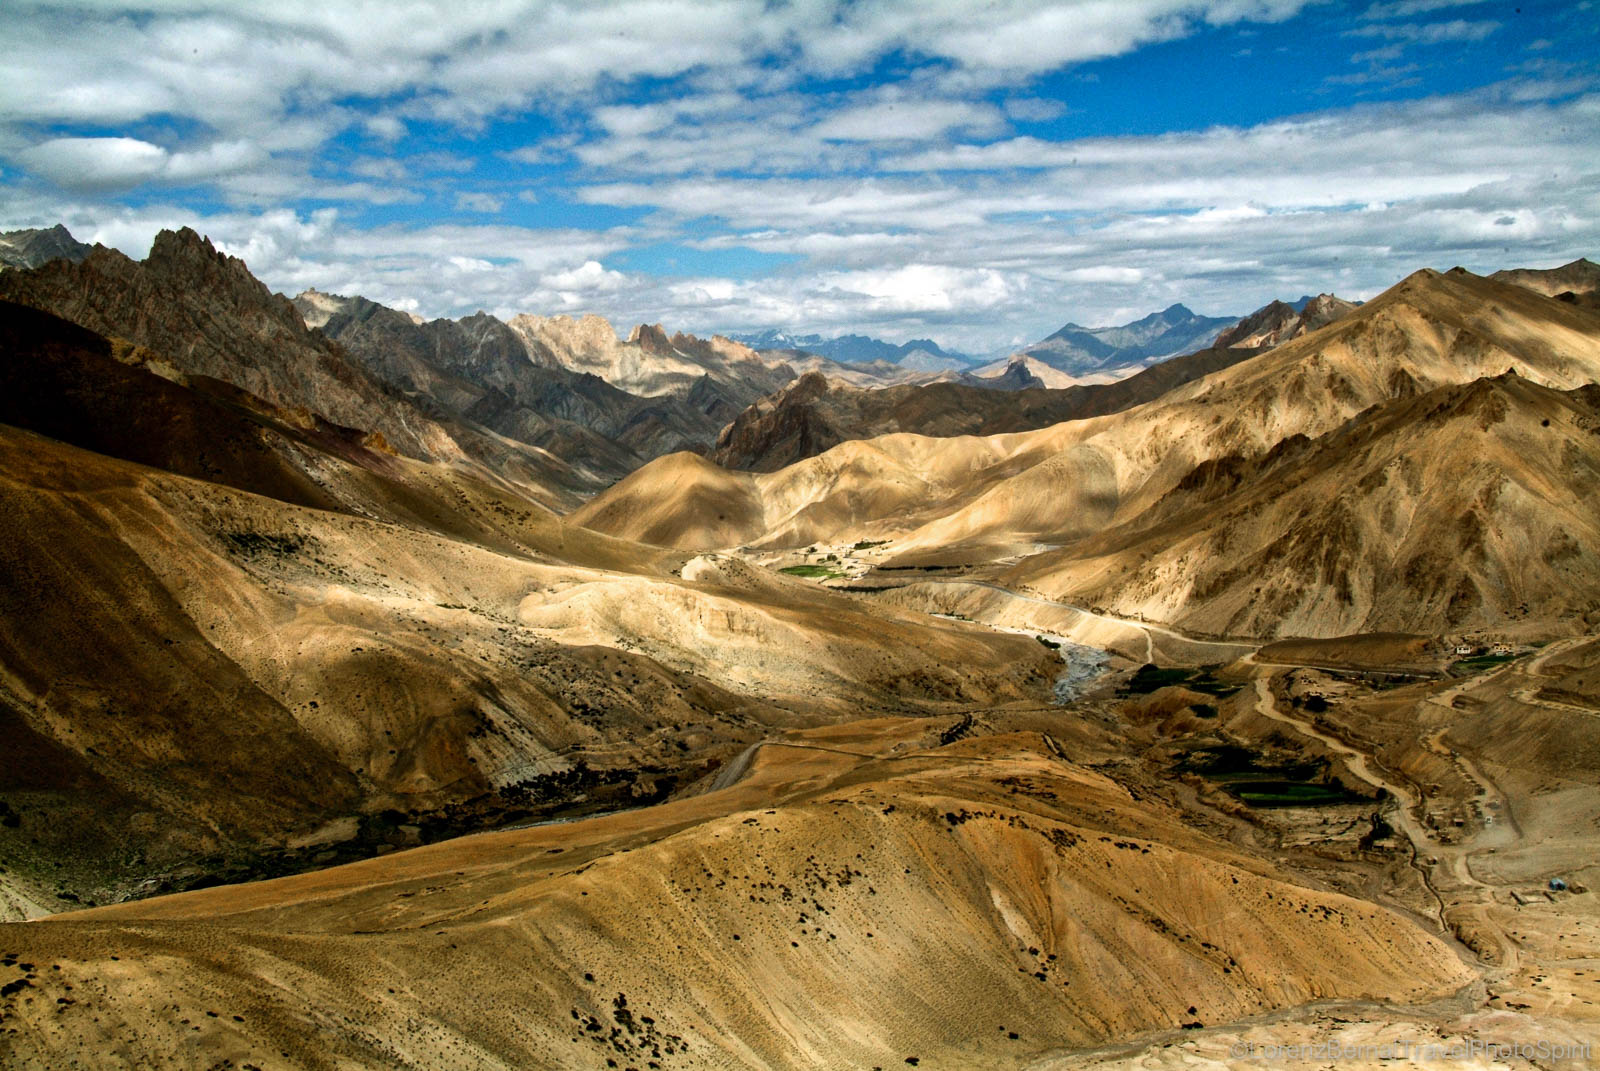 View on the desert peaks of the Himalayan Ladakh, India